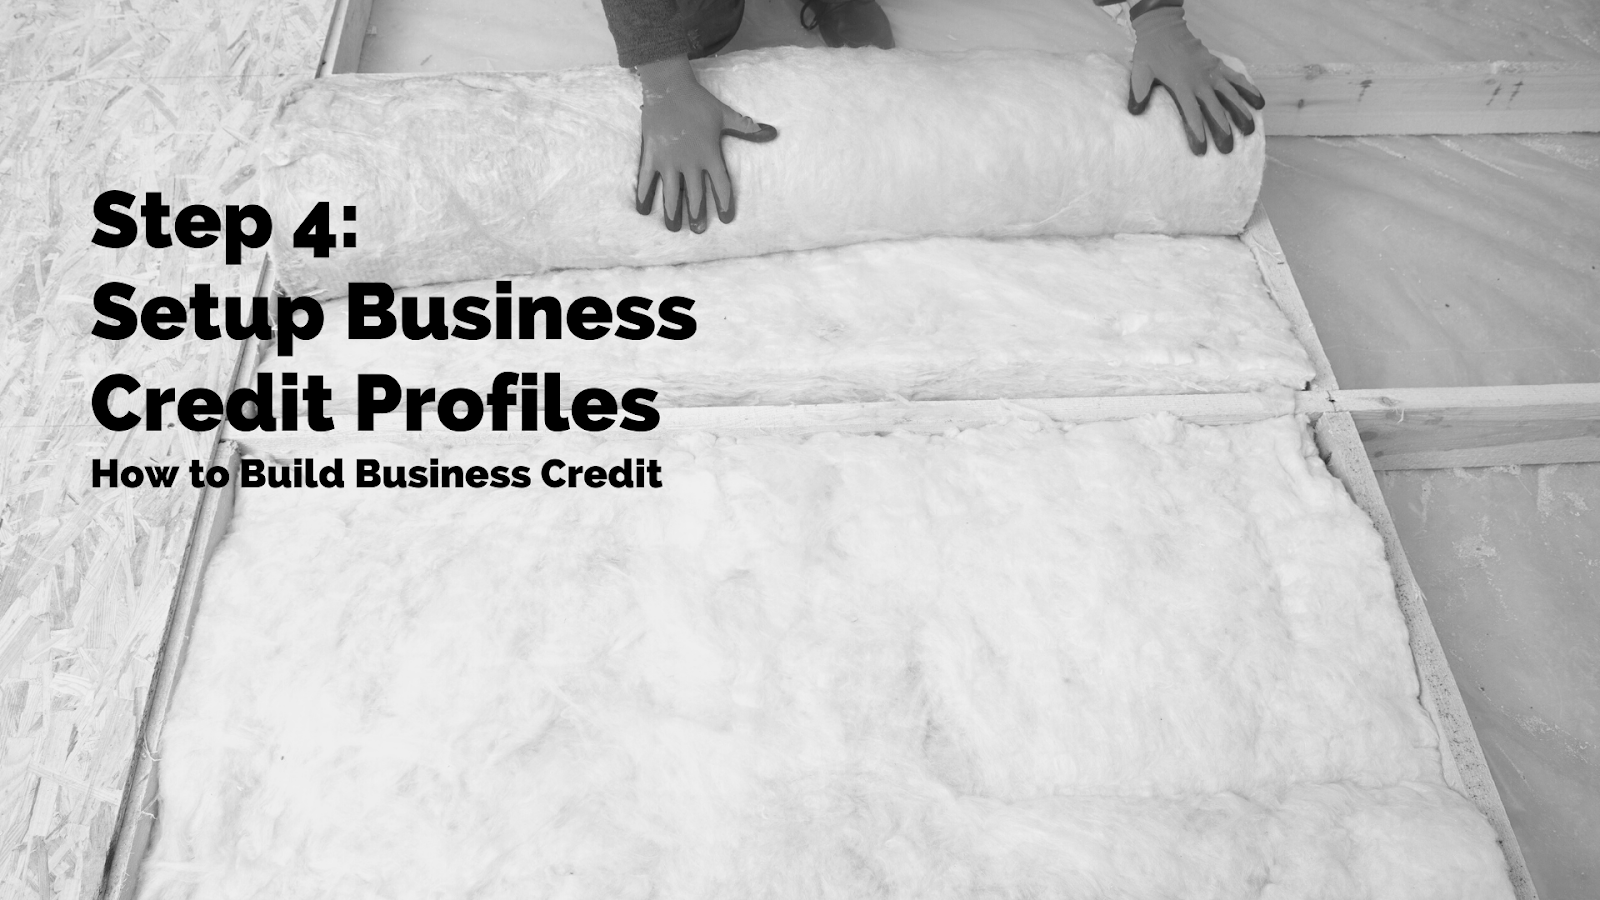 4. Setup Business Credit Profiles